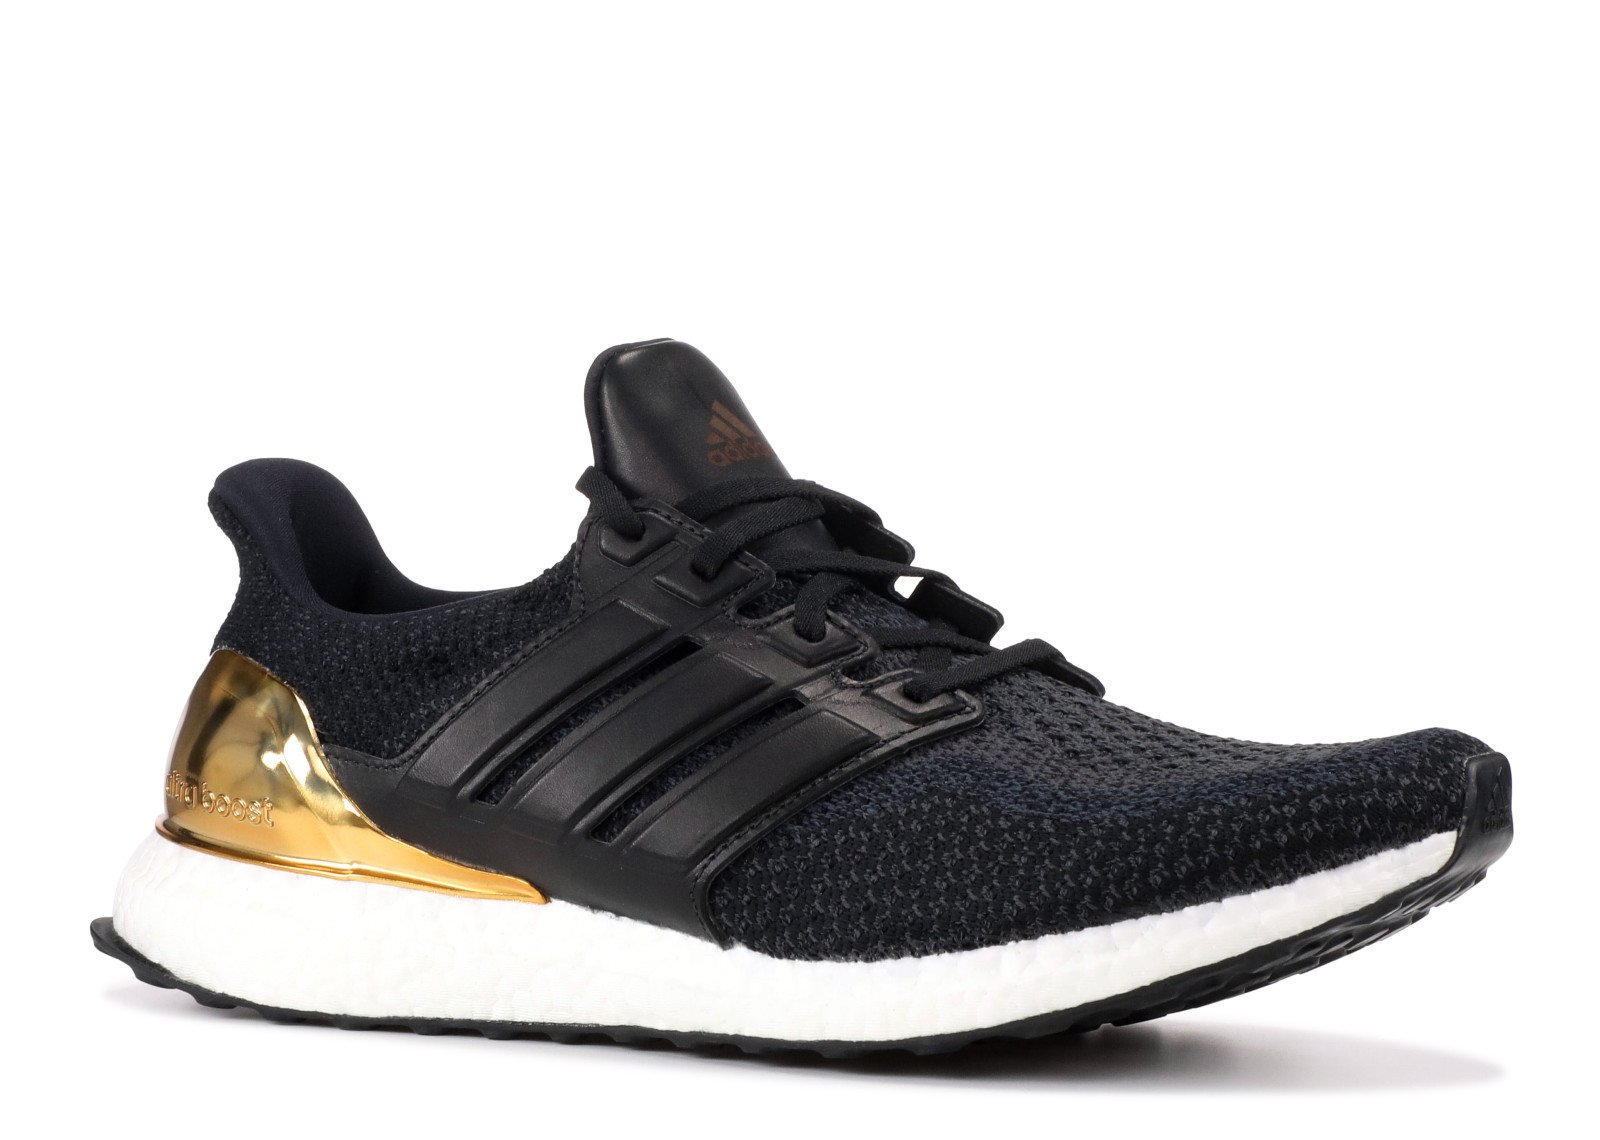 95de3257992 Galleon - Adidas UltraBoost LTD - BB3929